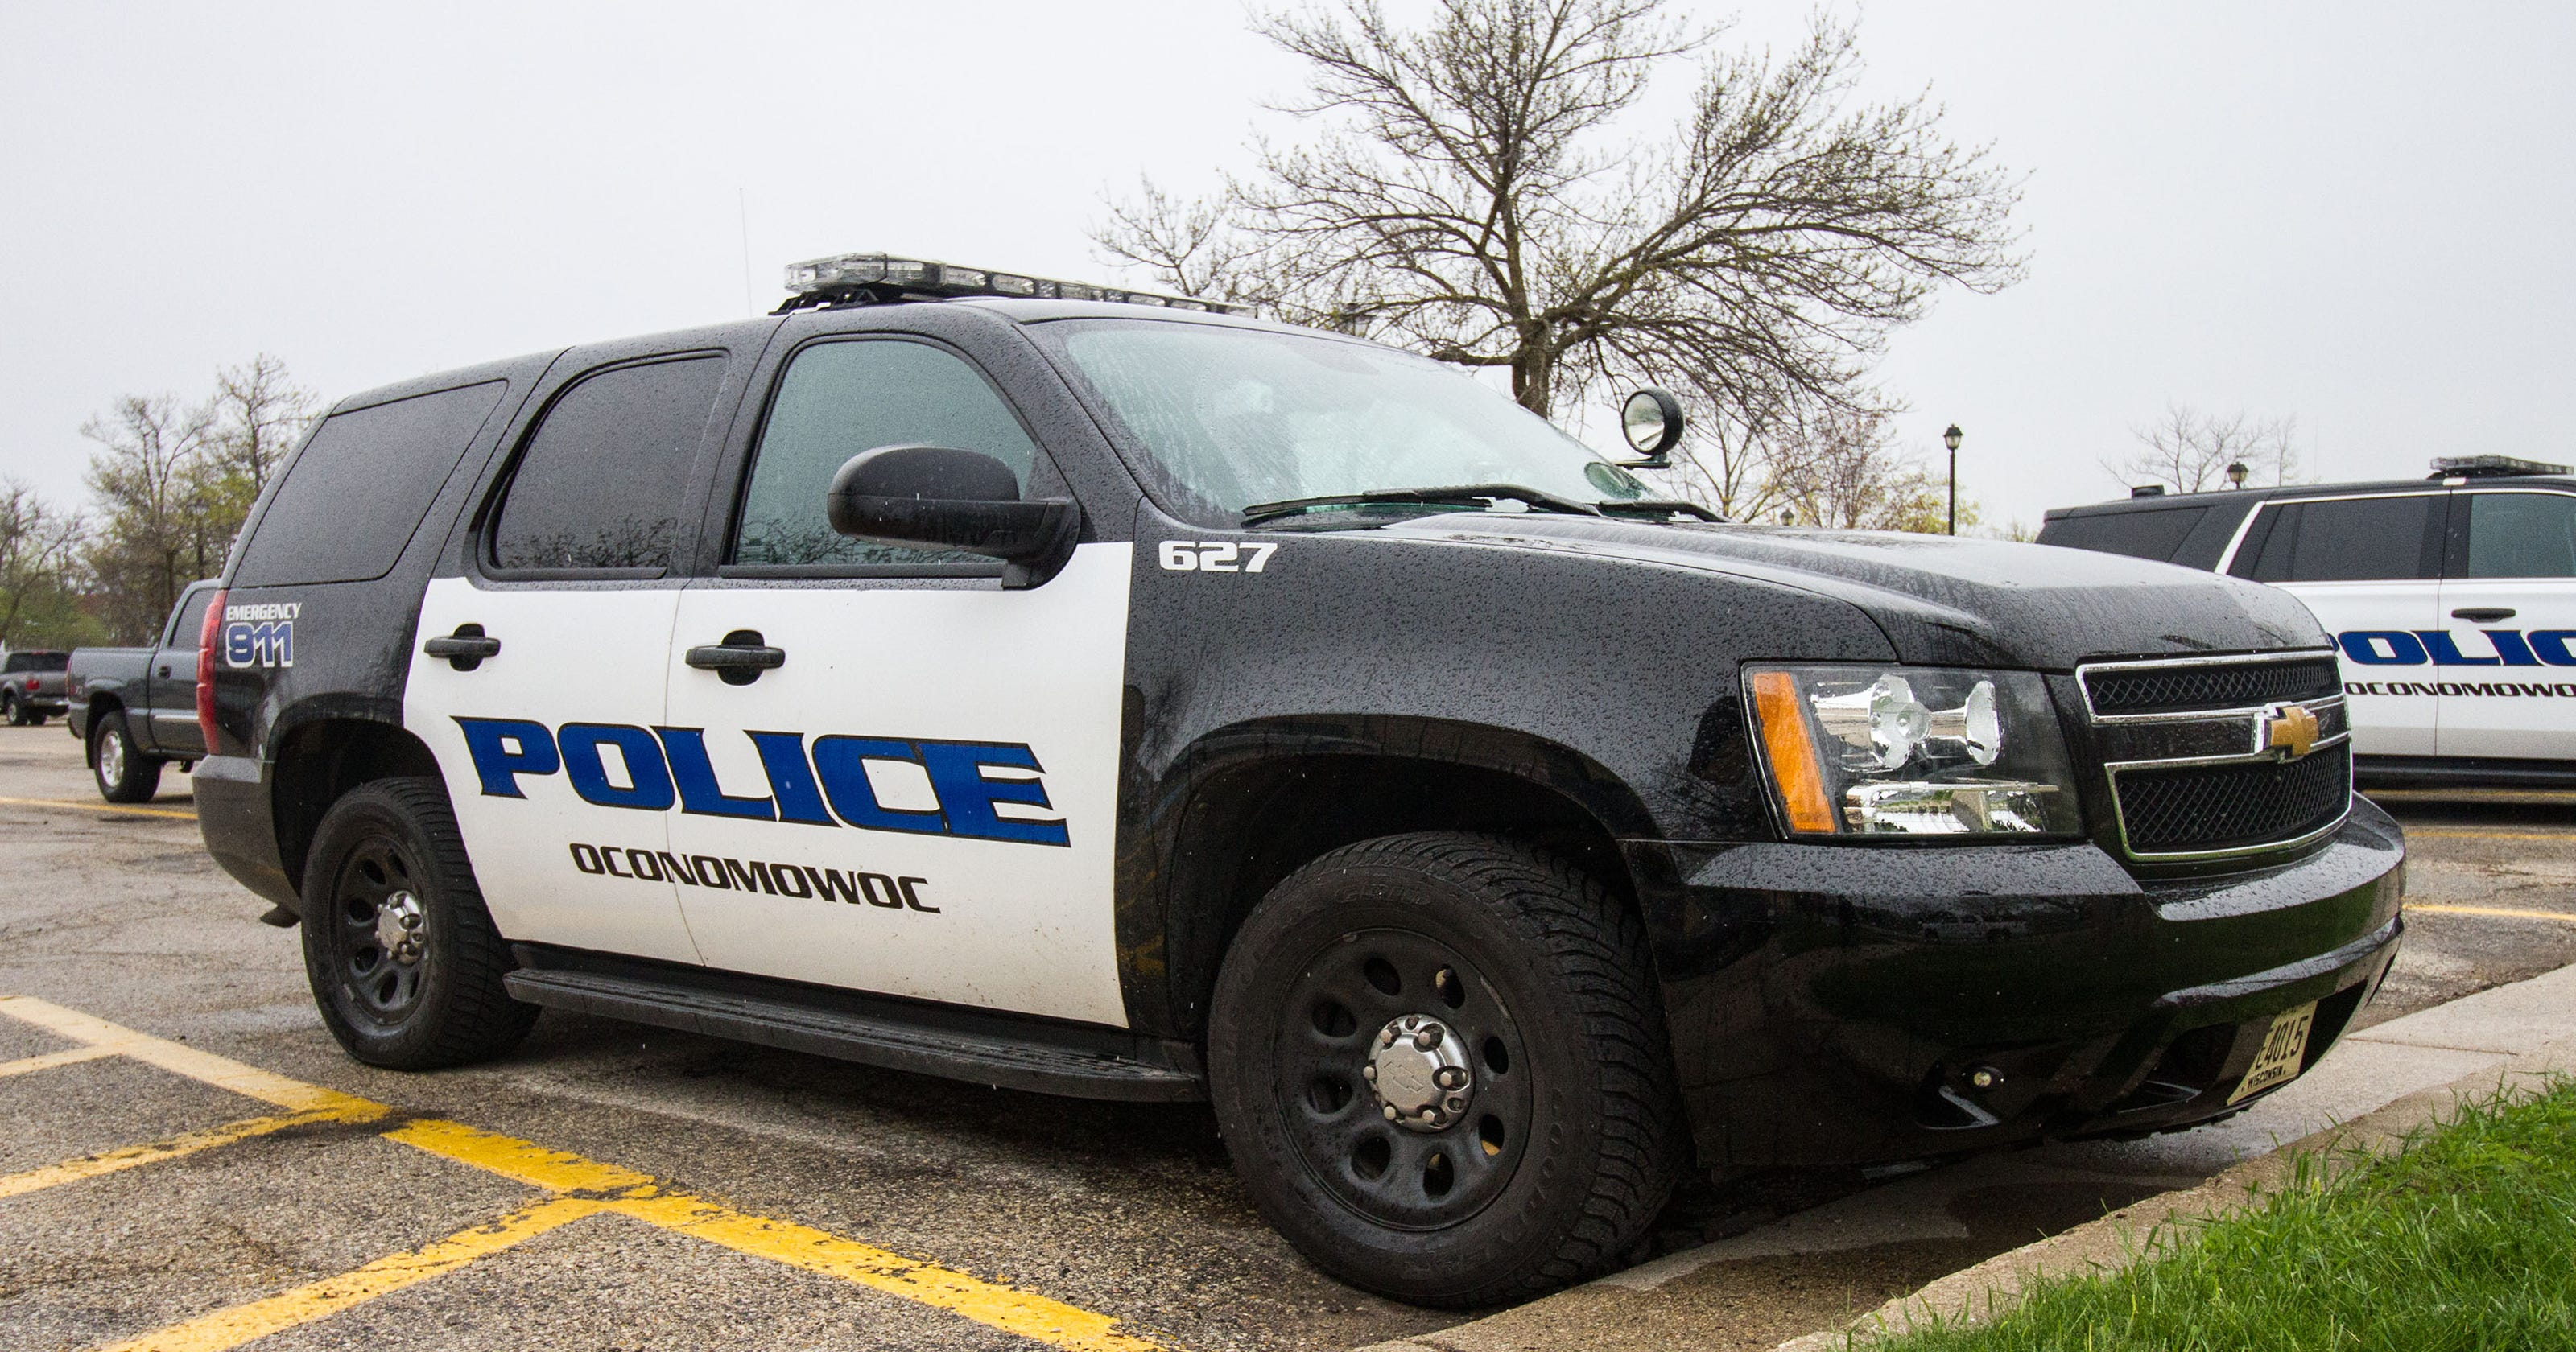 Man flies into drunken rampage downtown: Oconomowoc police